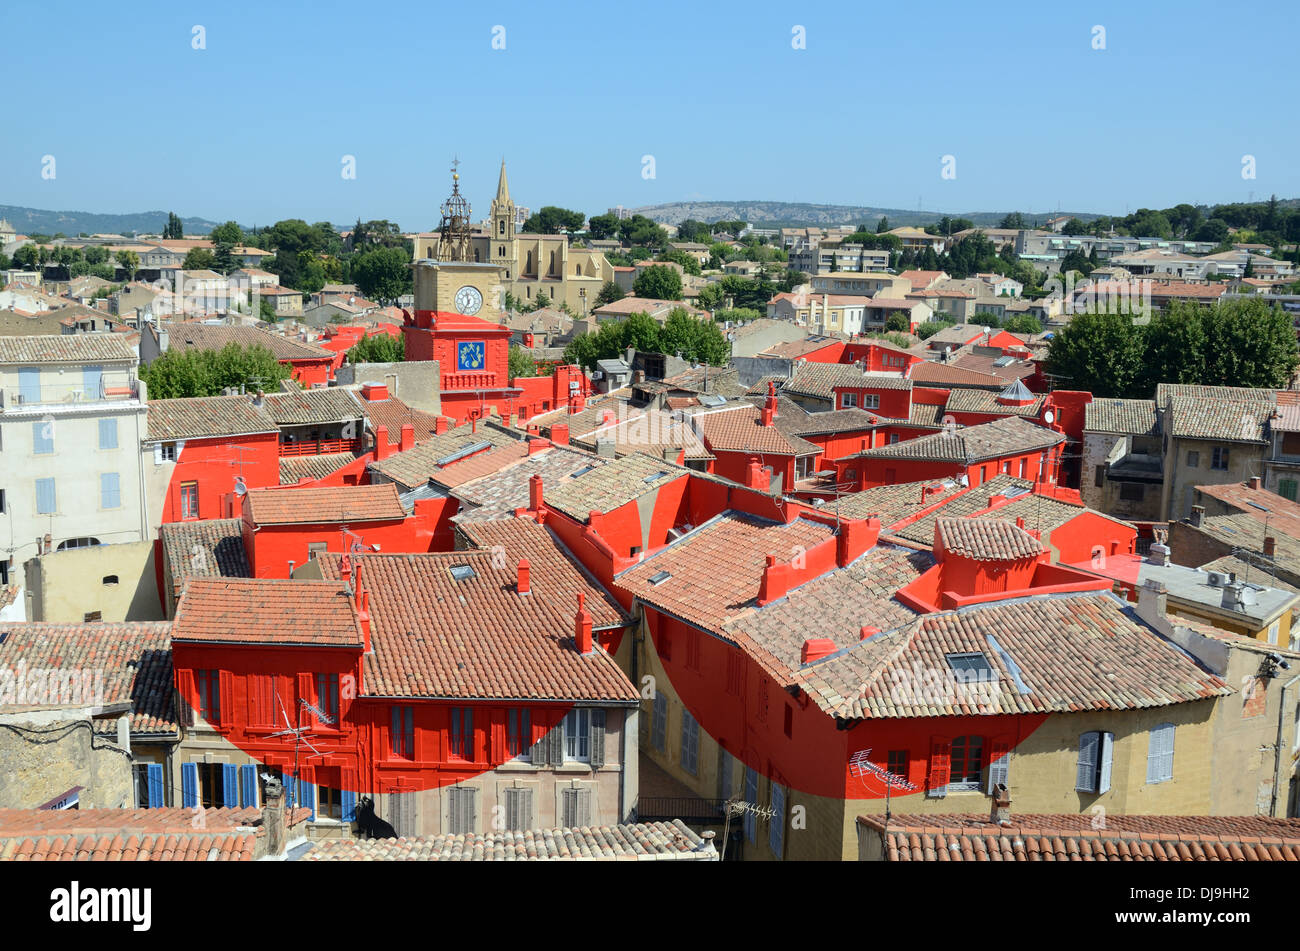 View over salon de provence painted red art installation for Chauffagiste salon de provence